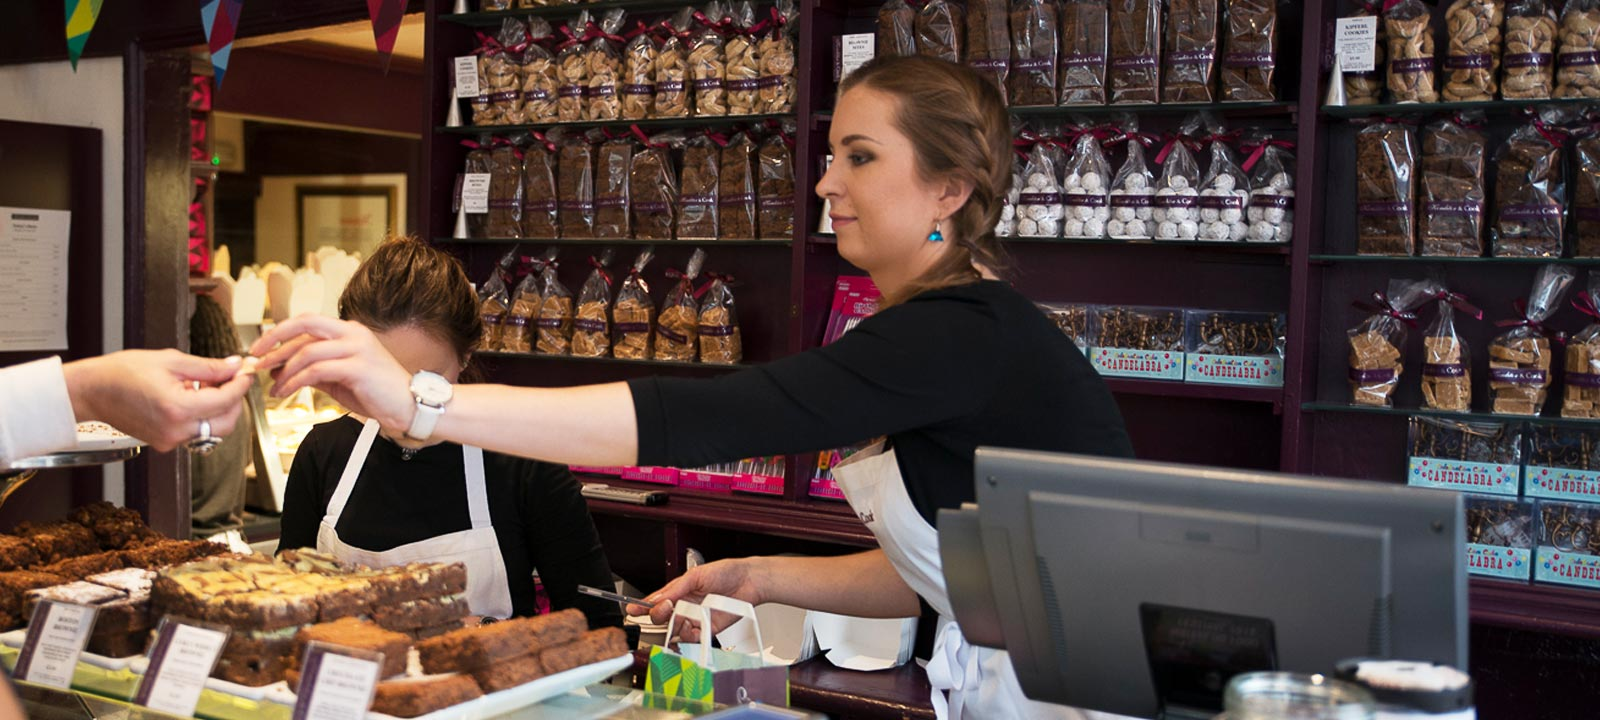 Shop staff member serving a customer